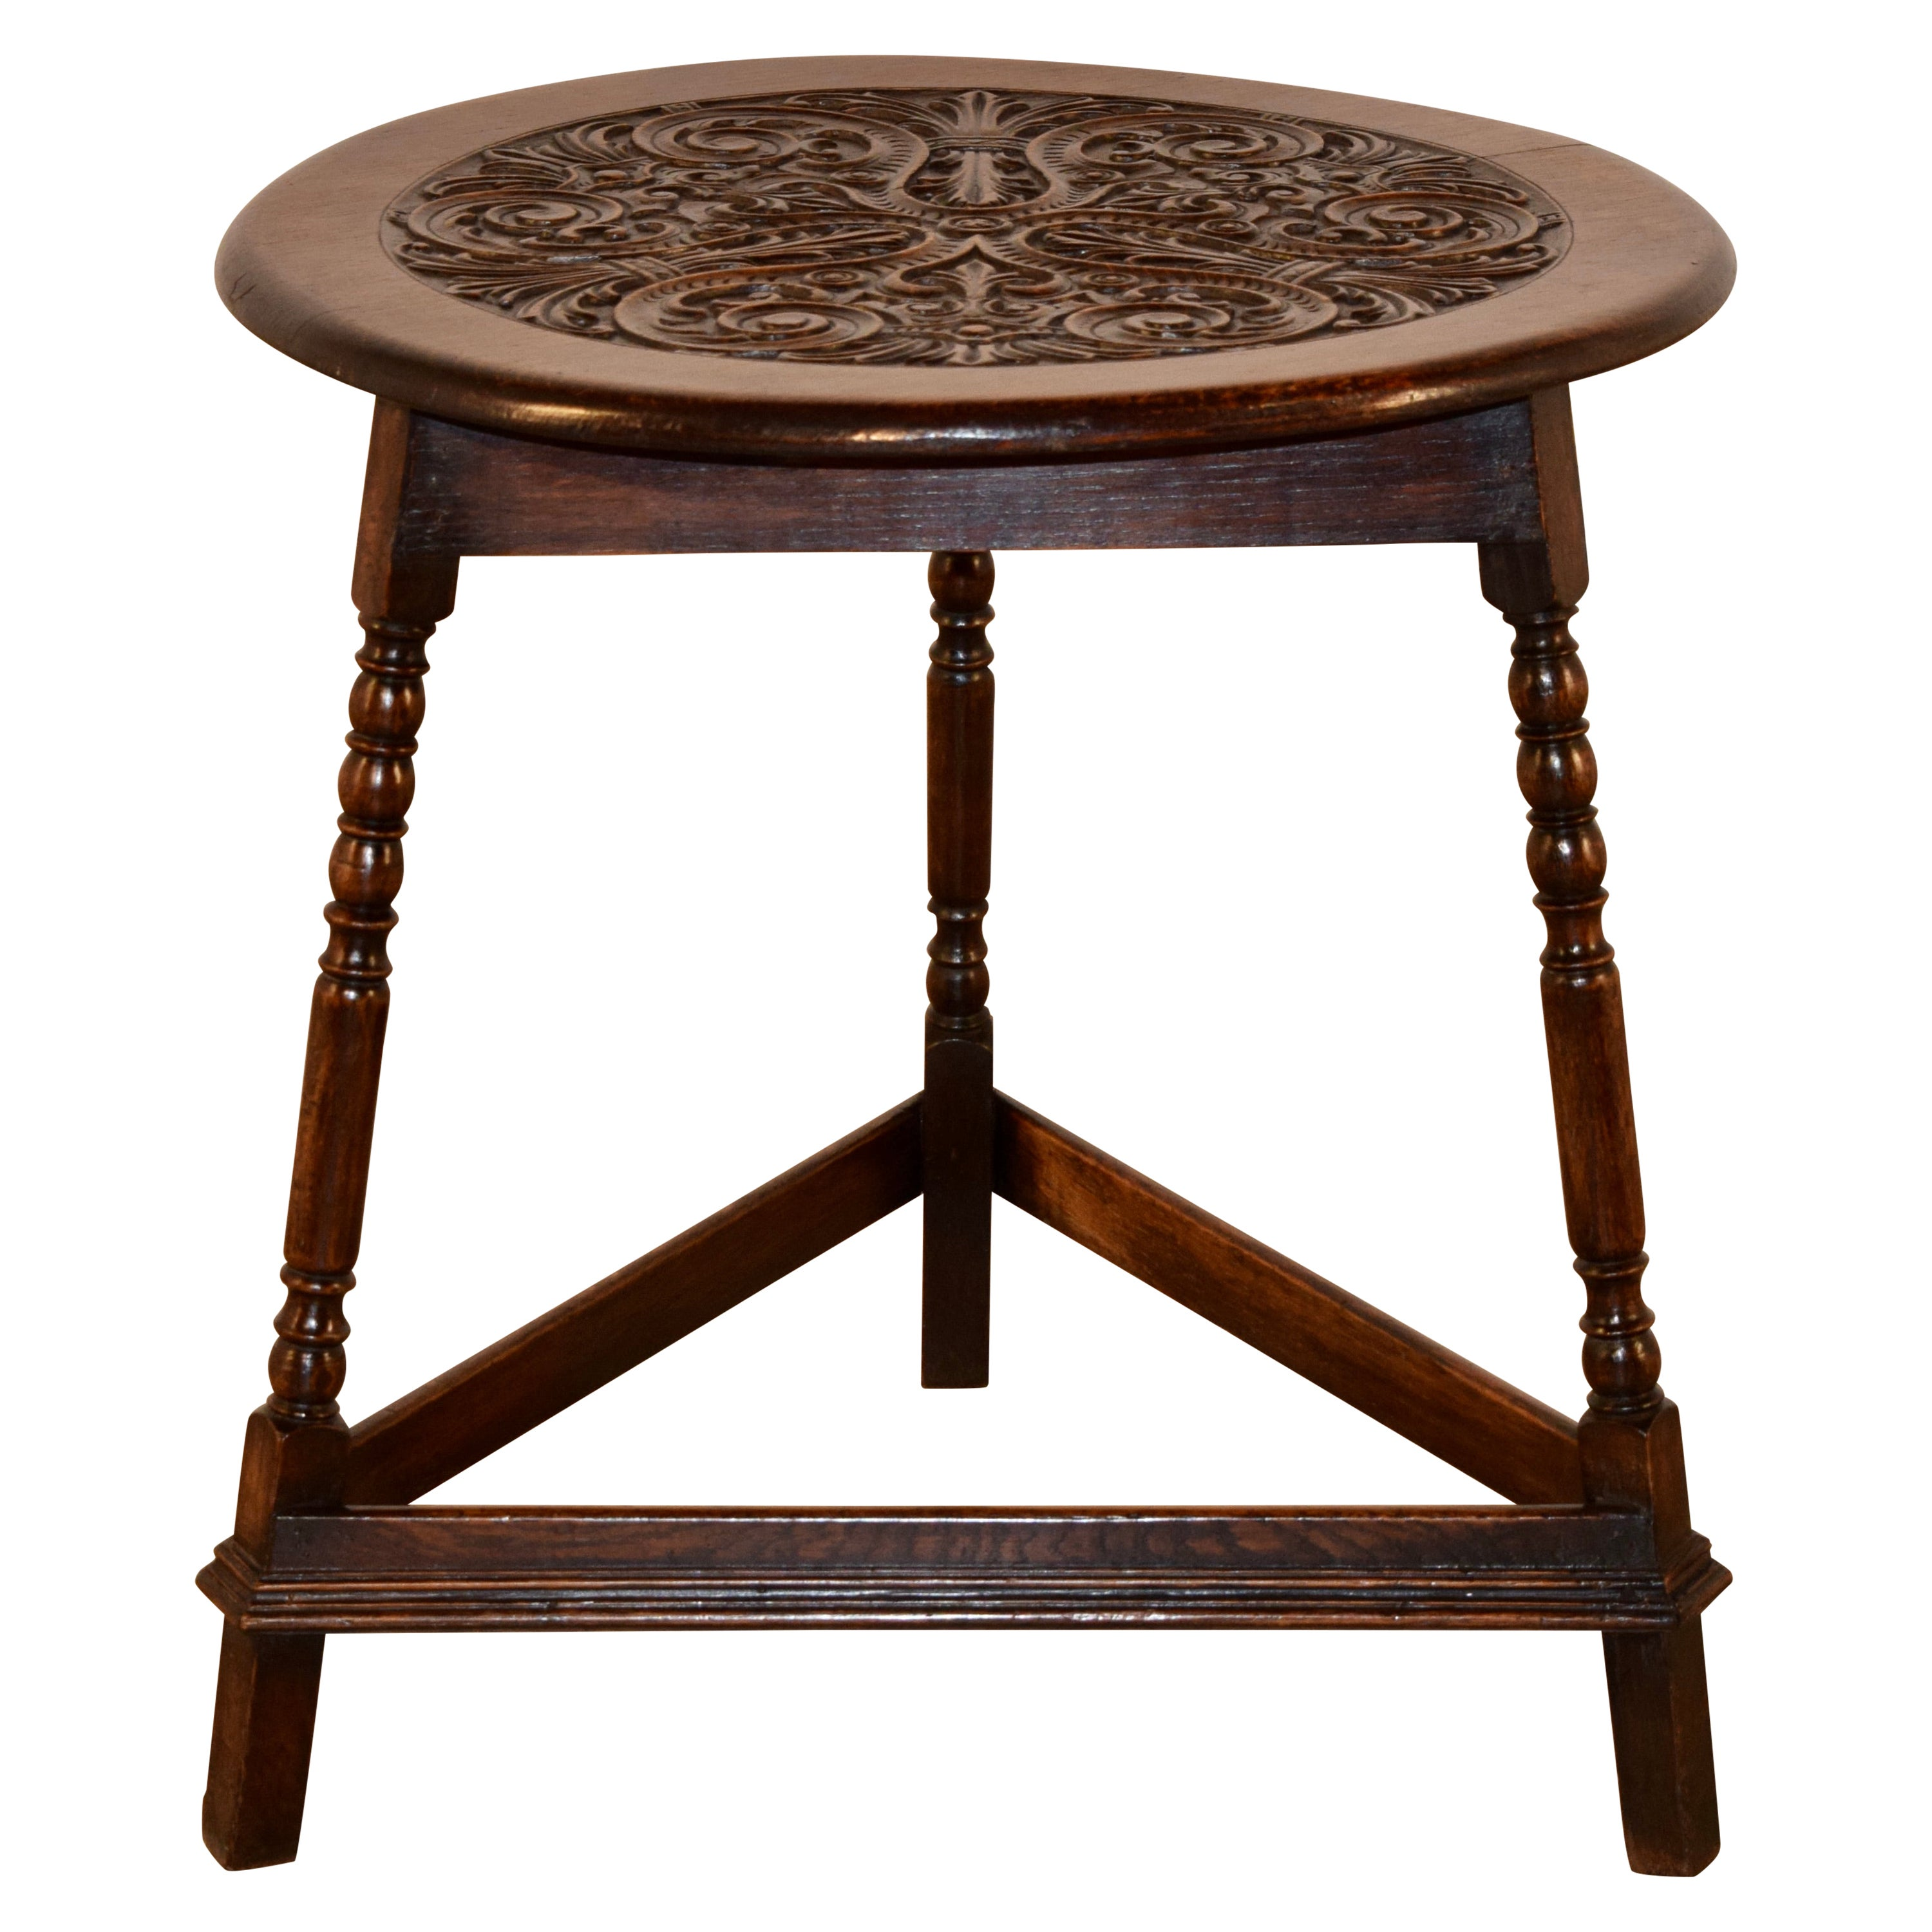 19th Century English Side Table